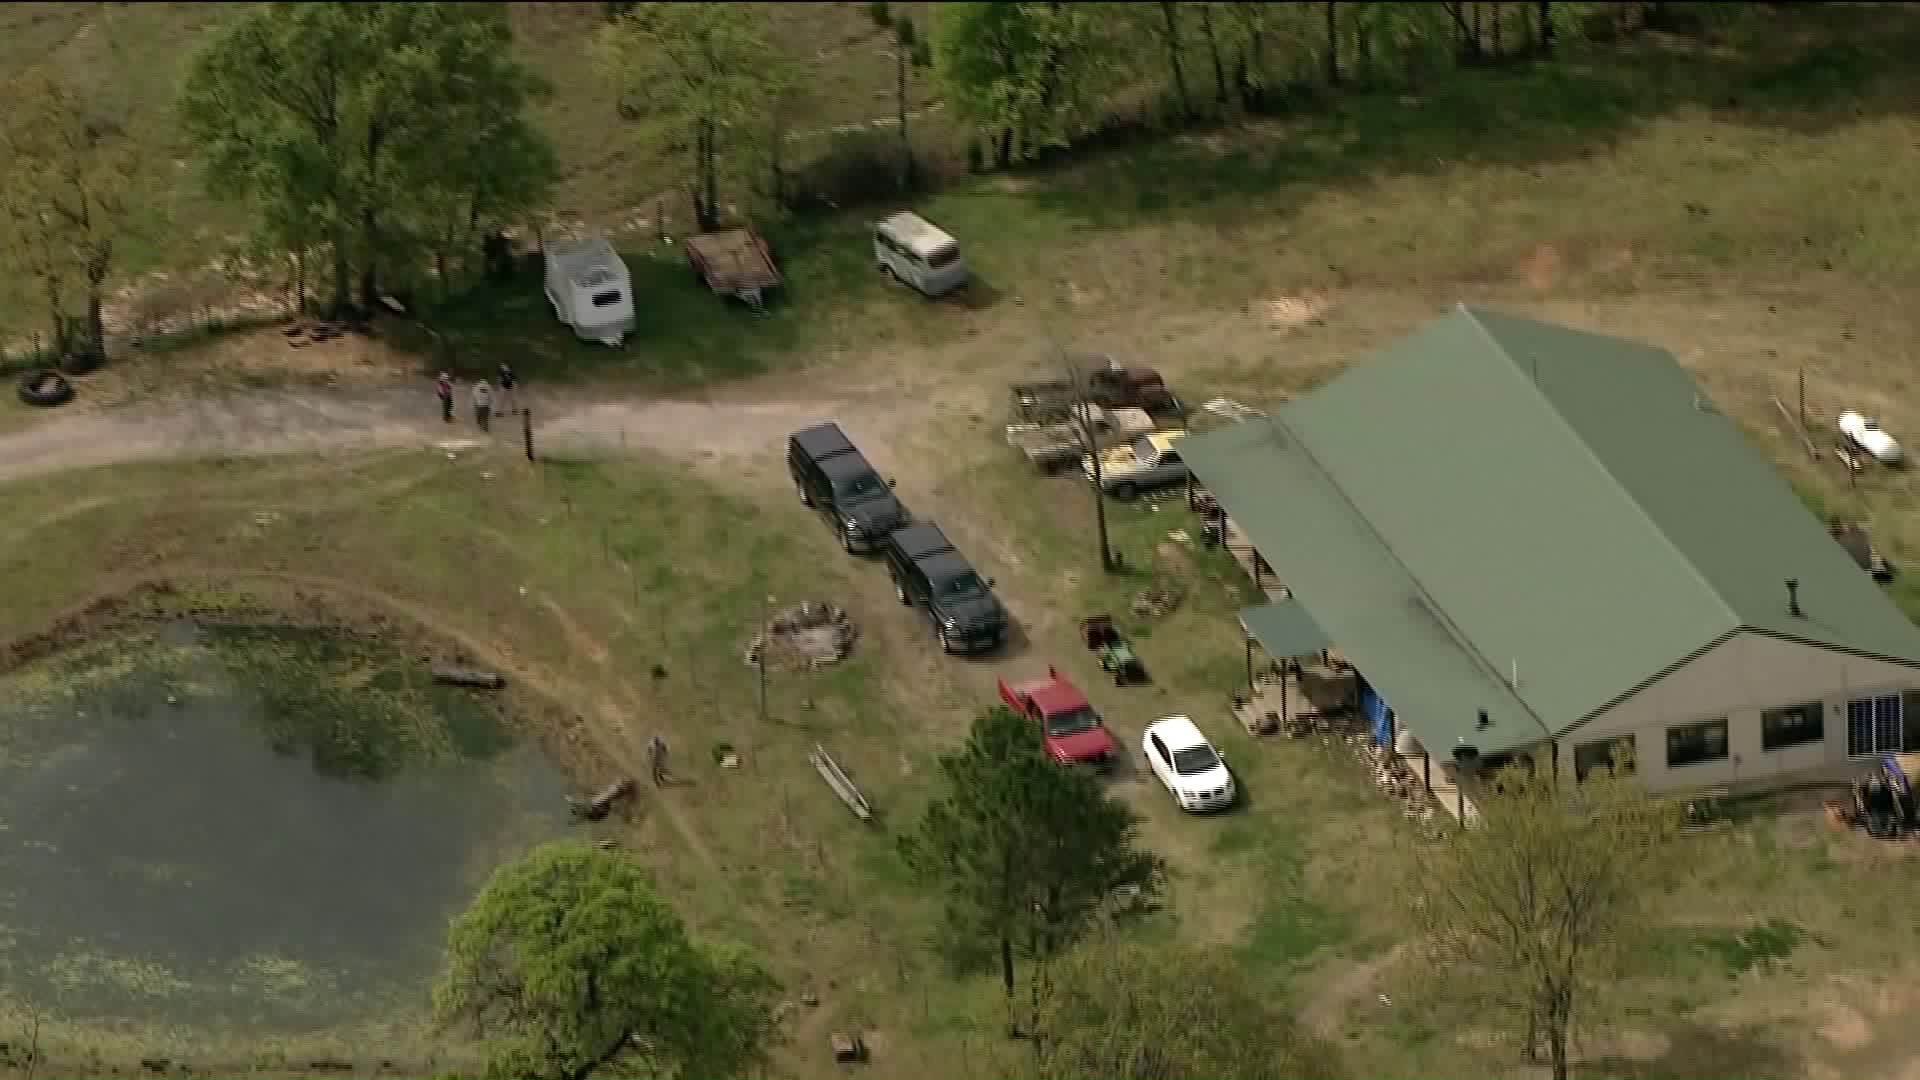 Officials searching a property in Seminole County